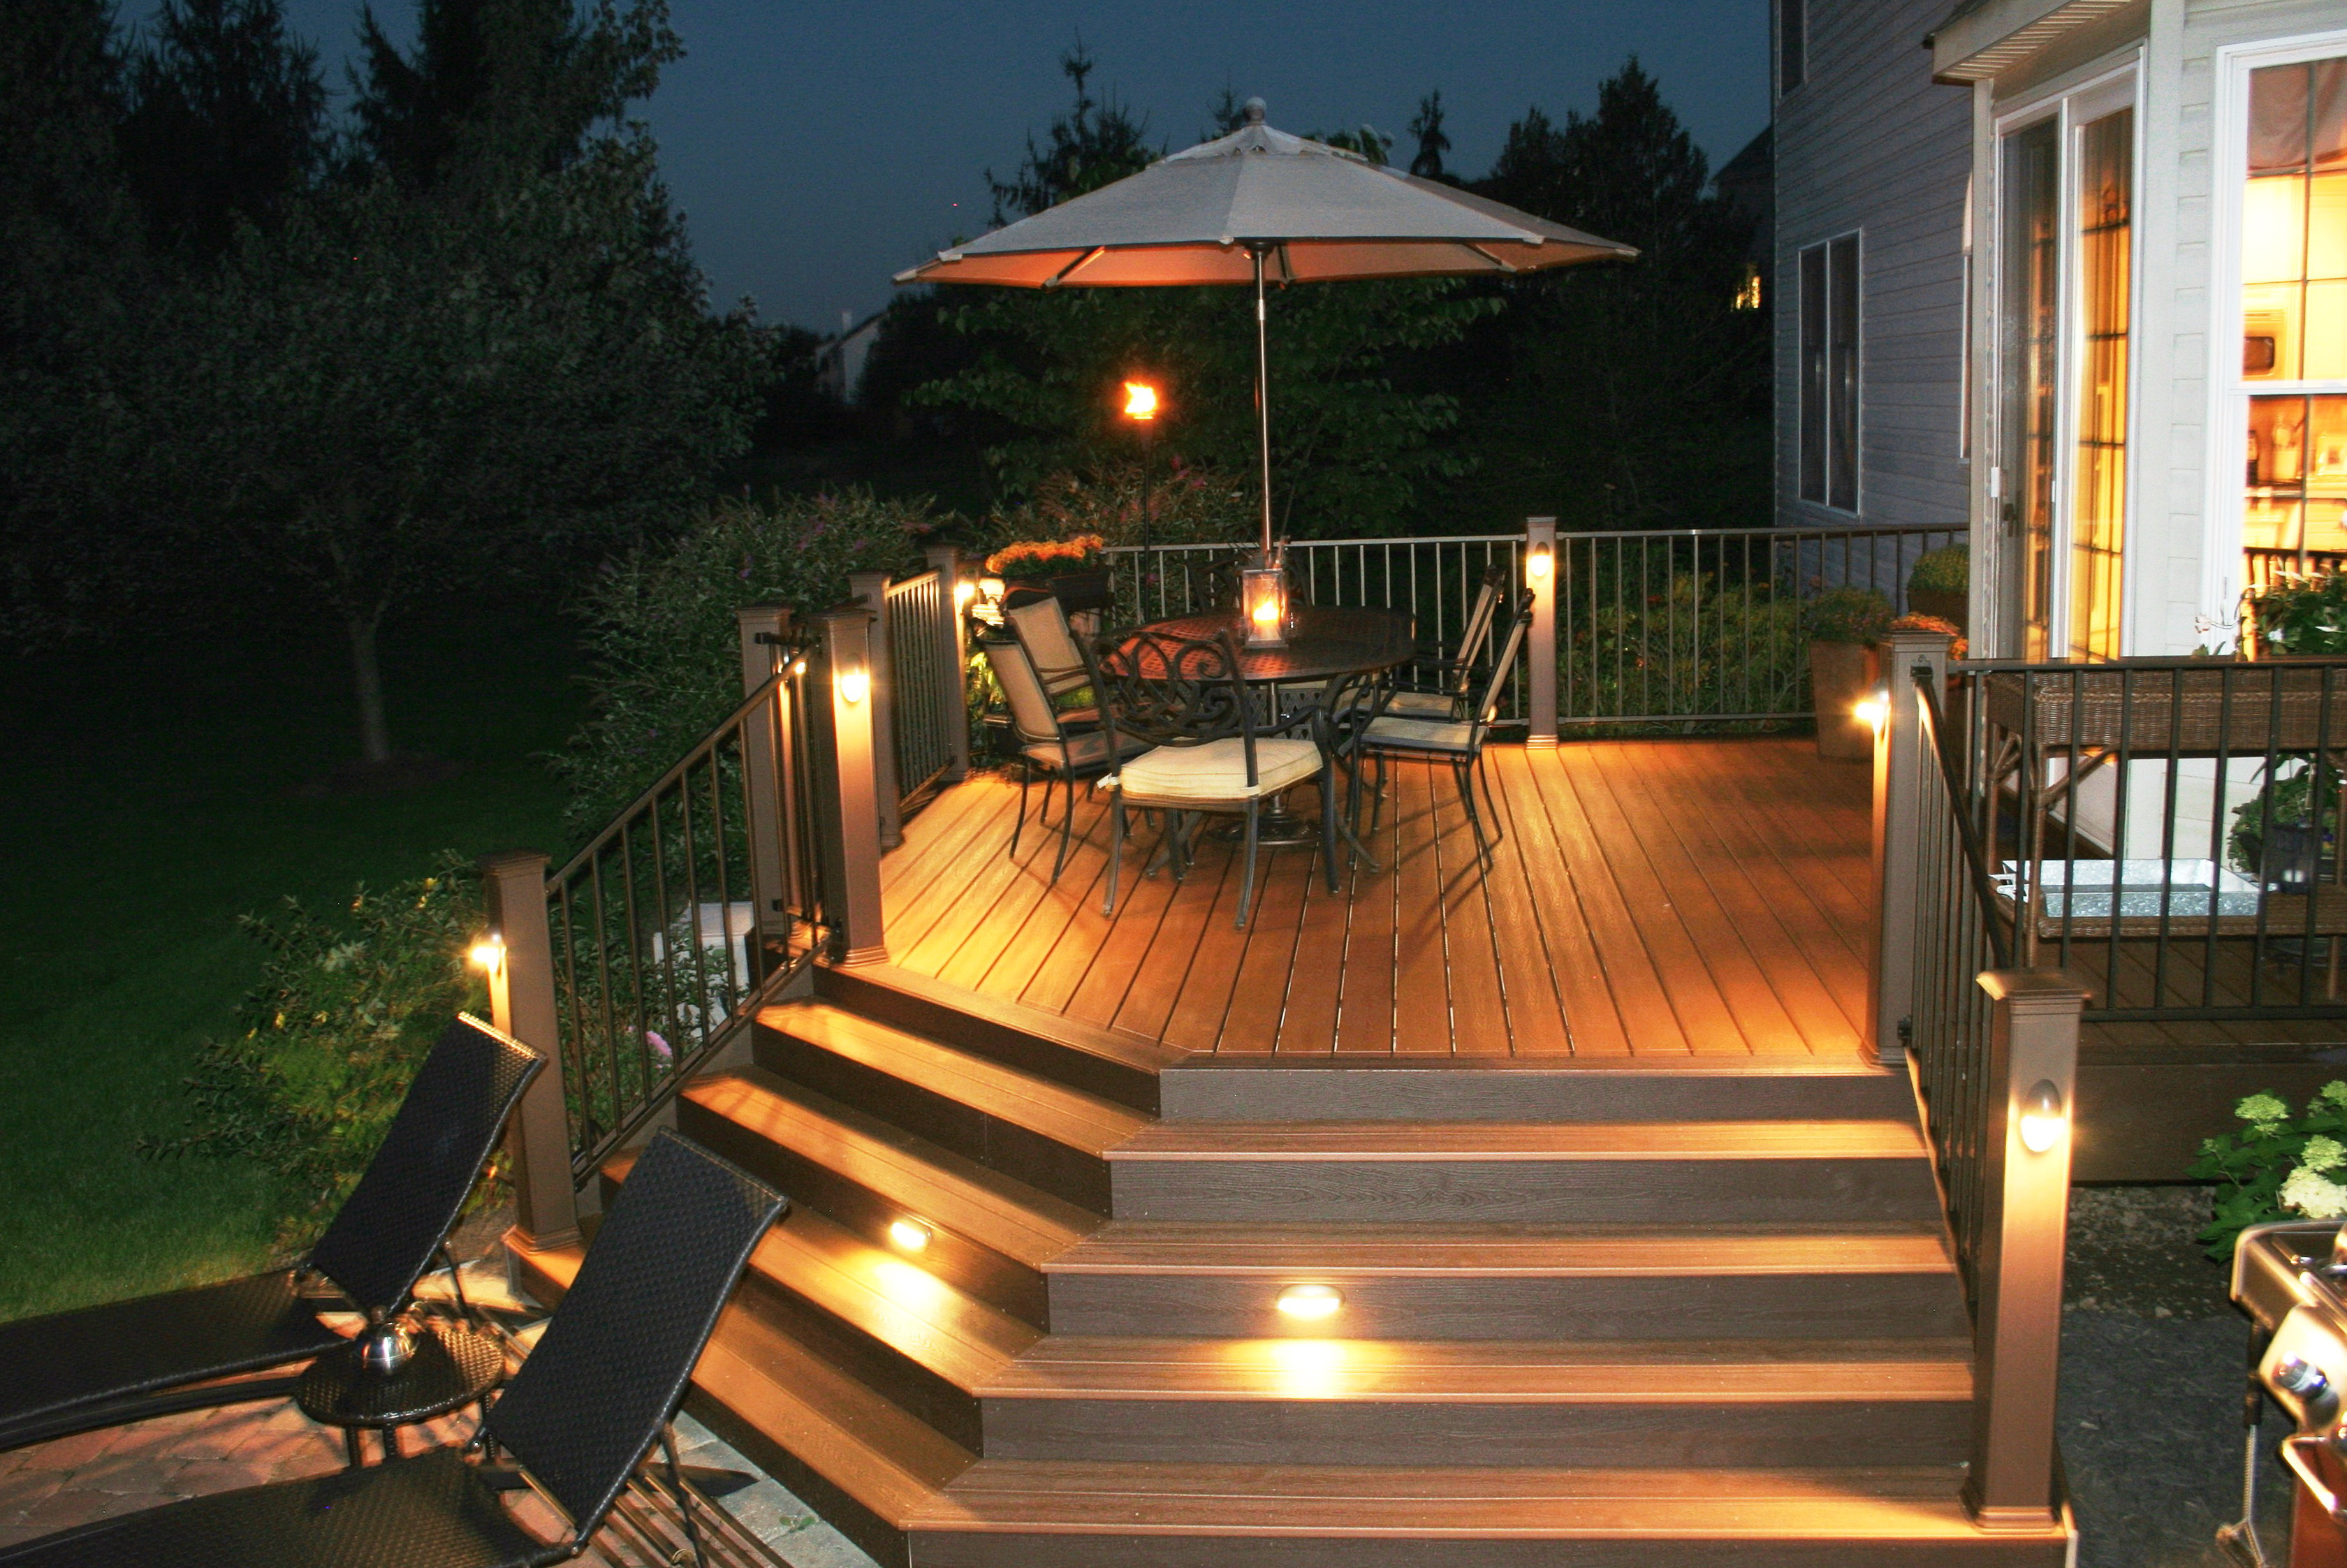 Lowes deck lighting democraciaejustica low aloadofball Image collections